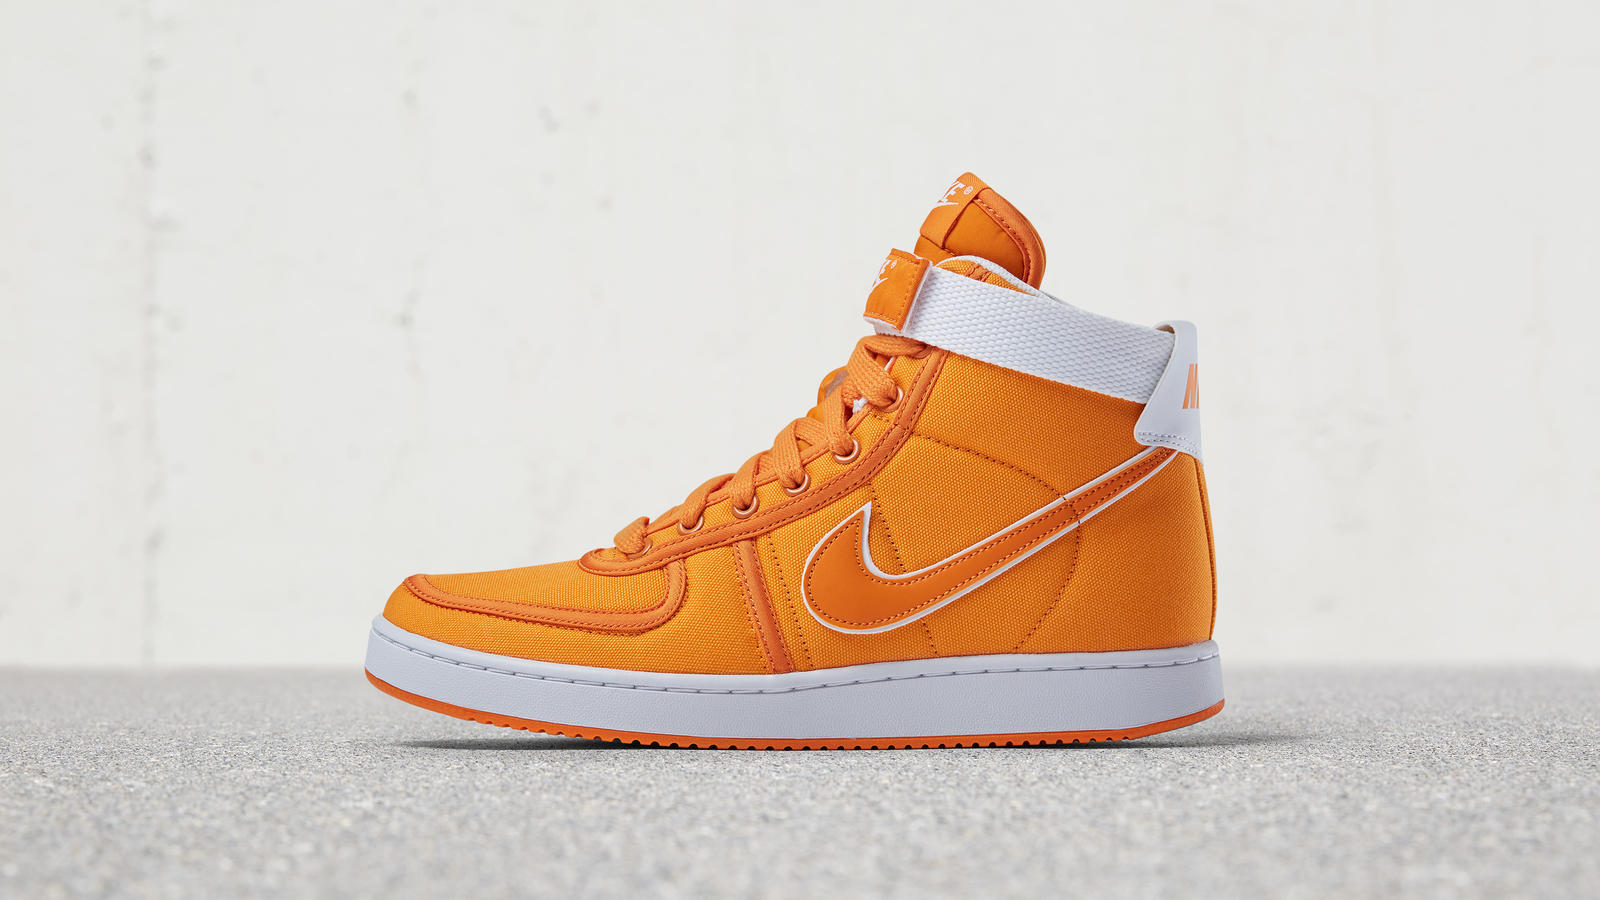 Vandal orange 1 hd 1600